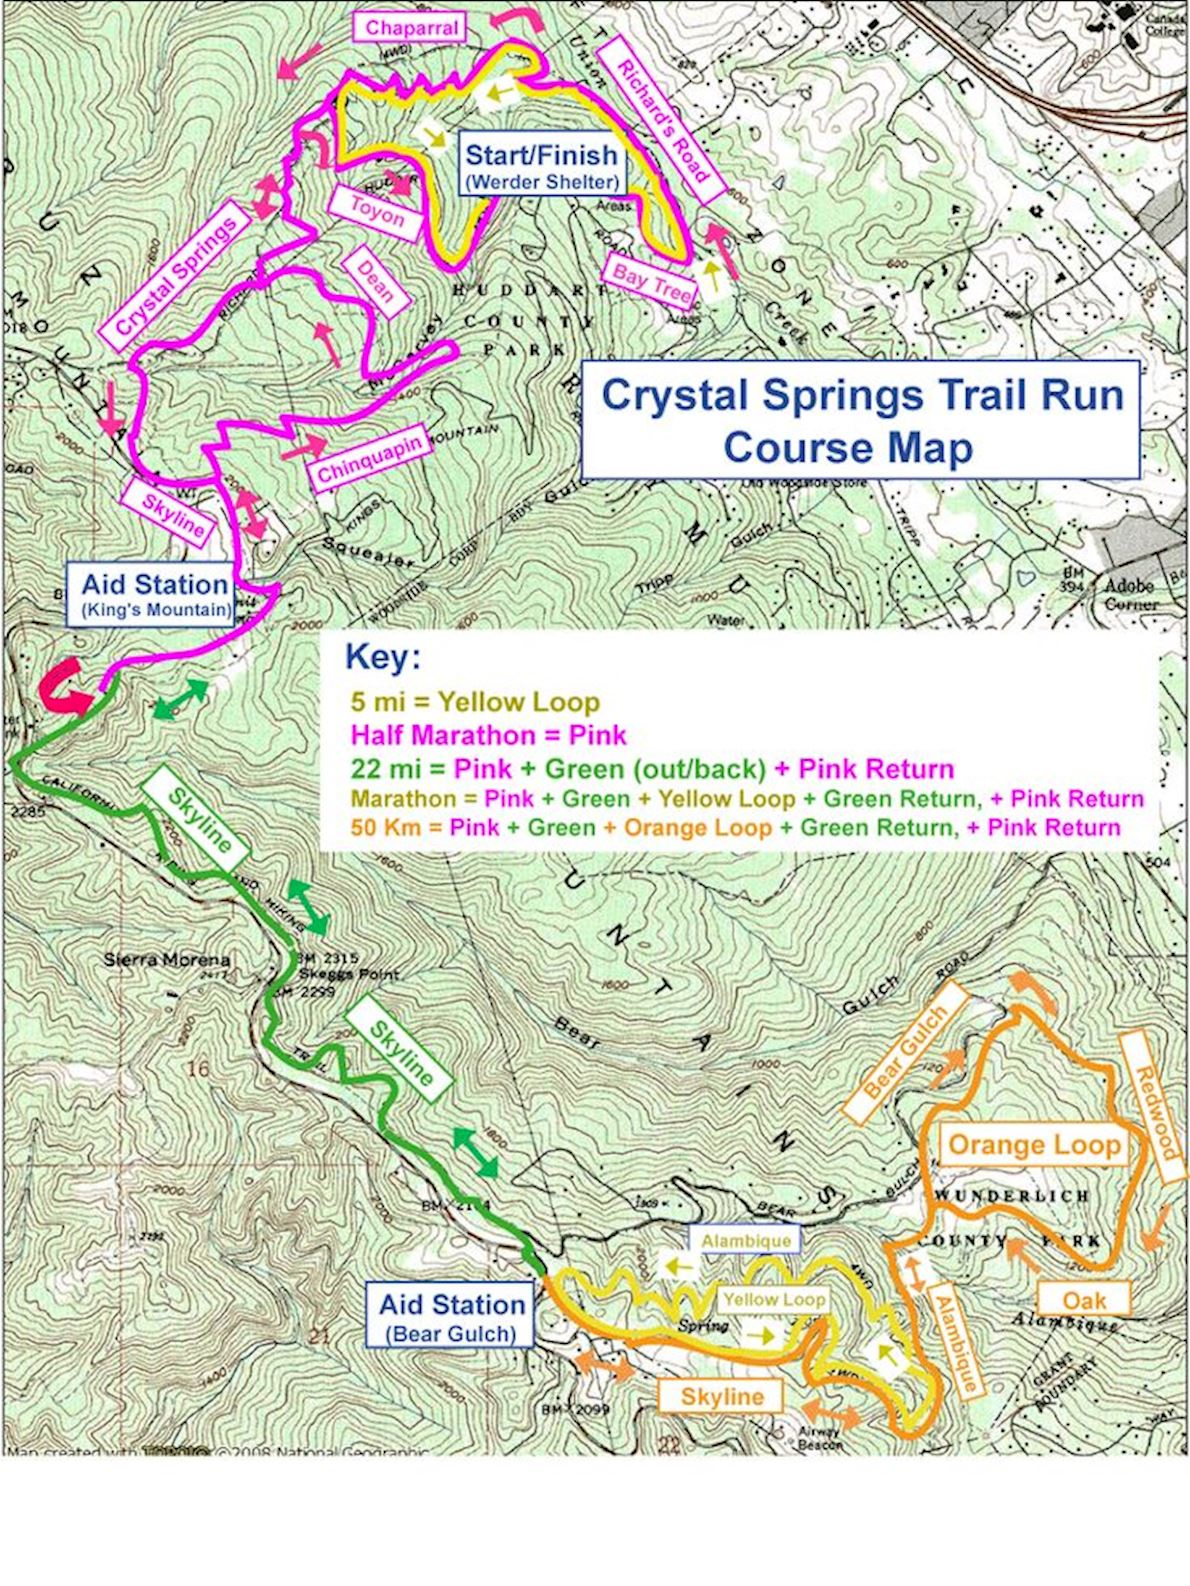 Crystal Springs (Winter) Trail Run MAPA DEL RECORRIDO DE